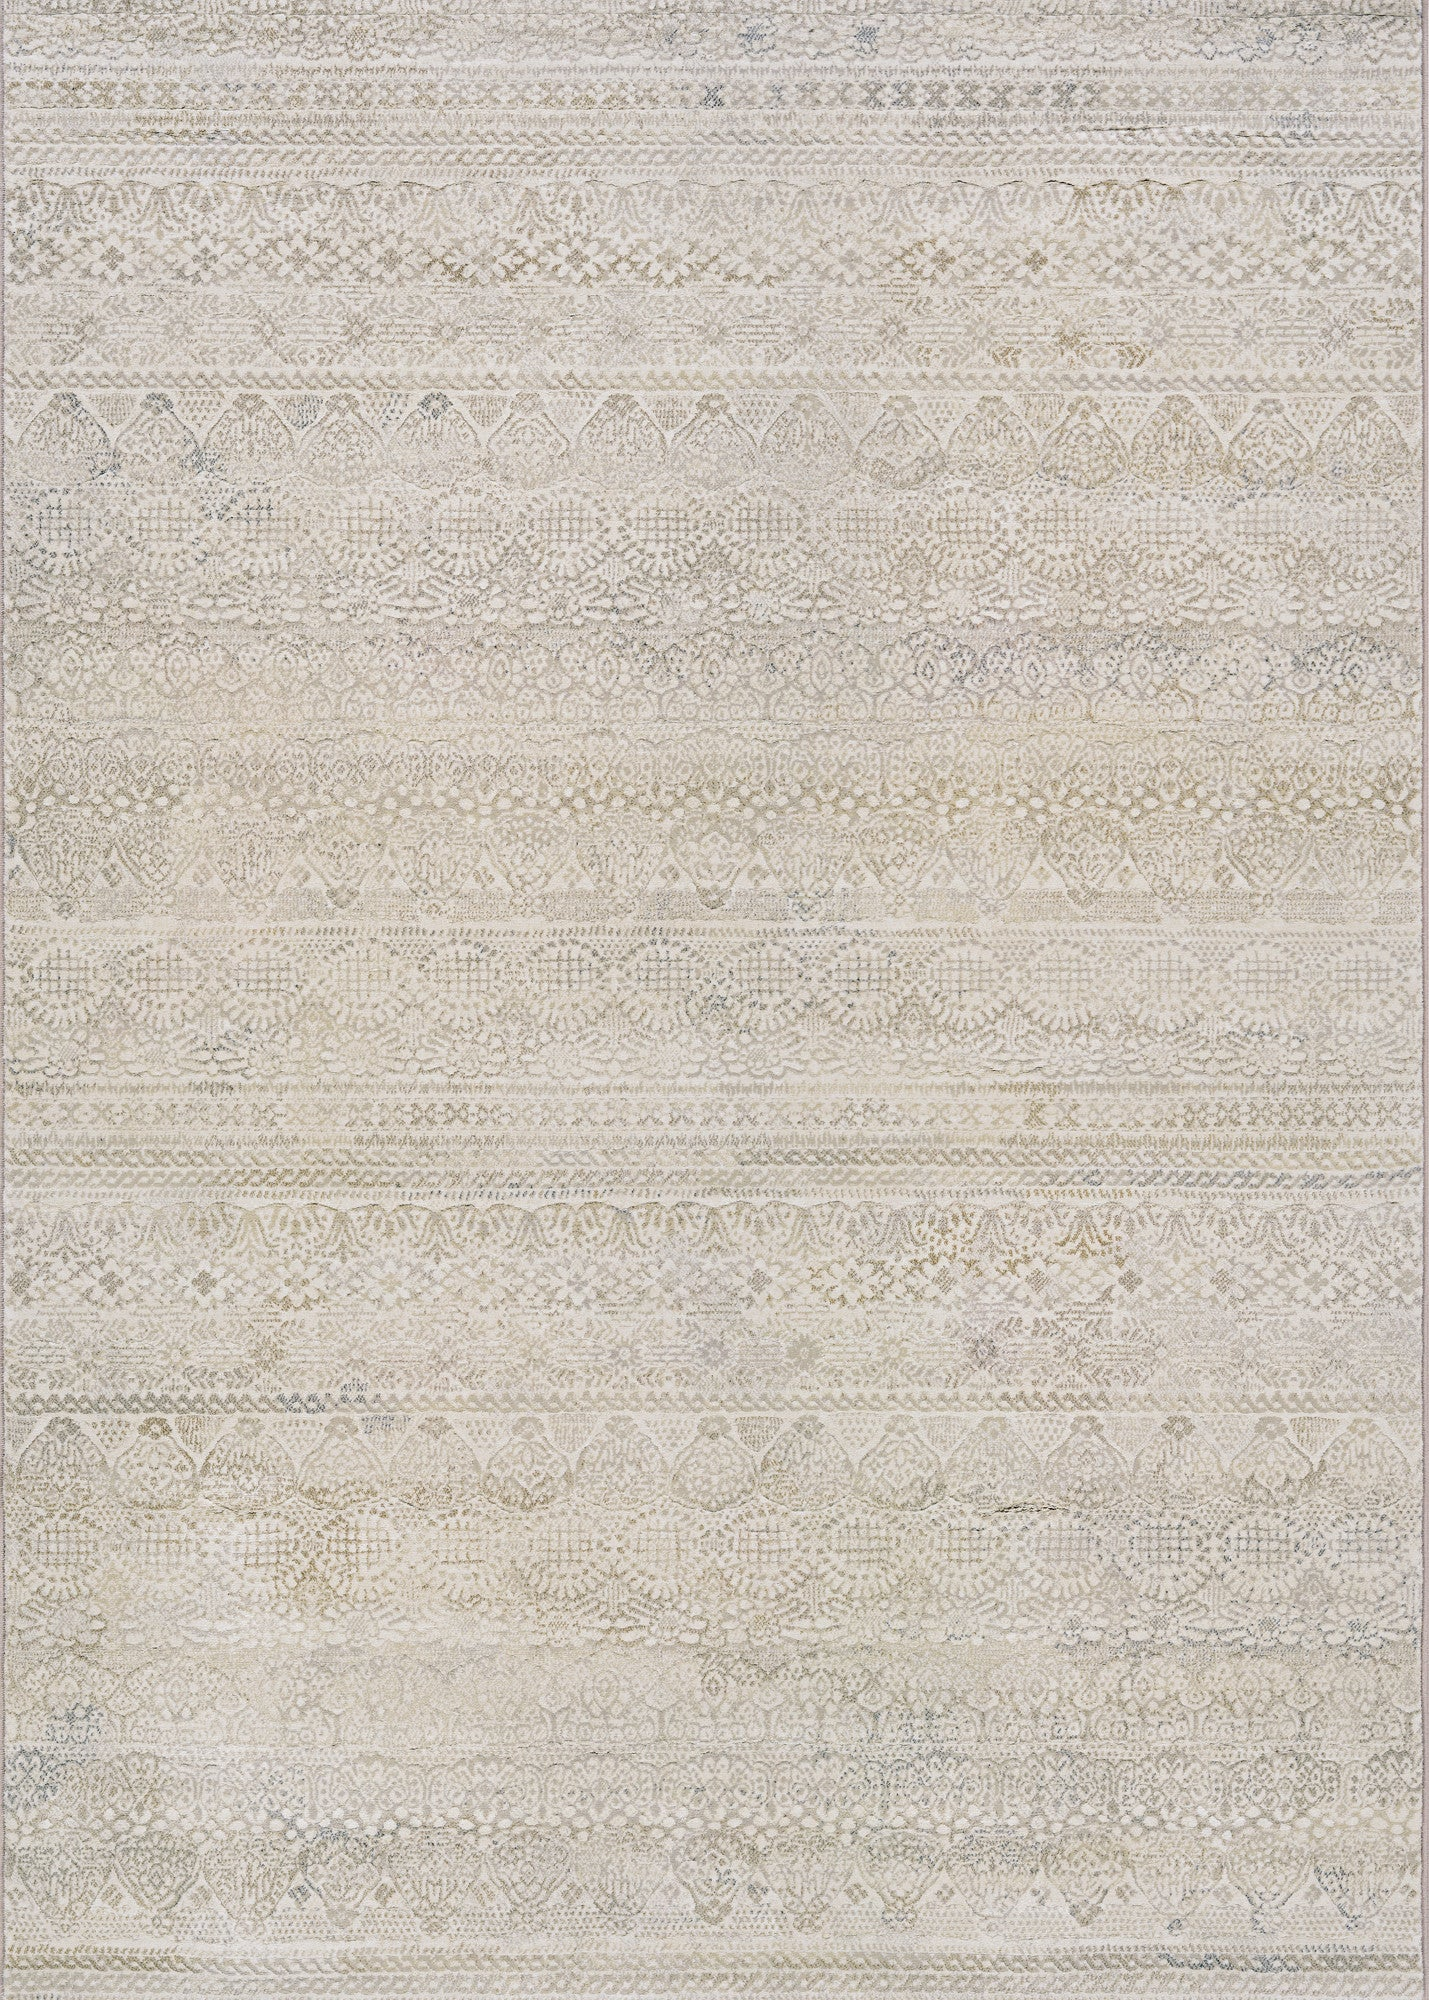 Couristan Easton Capella Ivory/Light Grey Area Rug